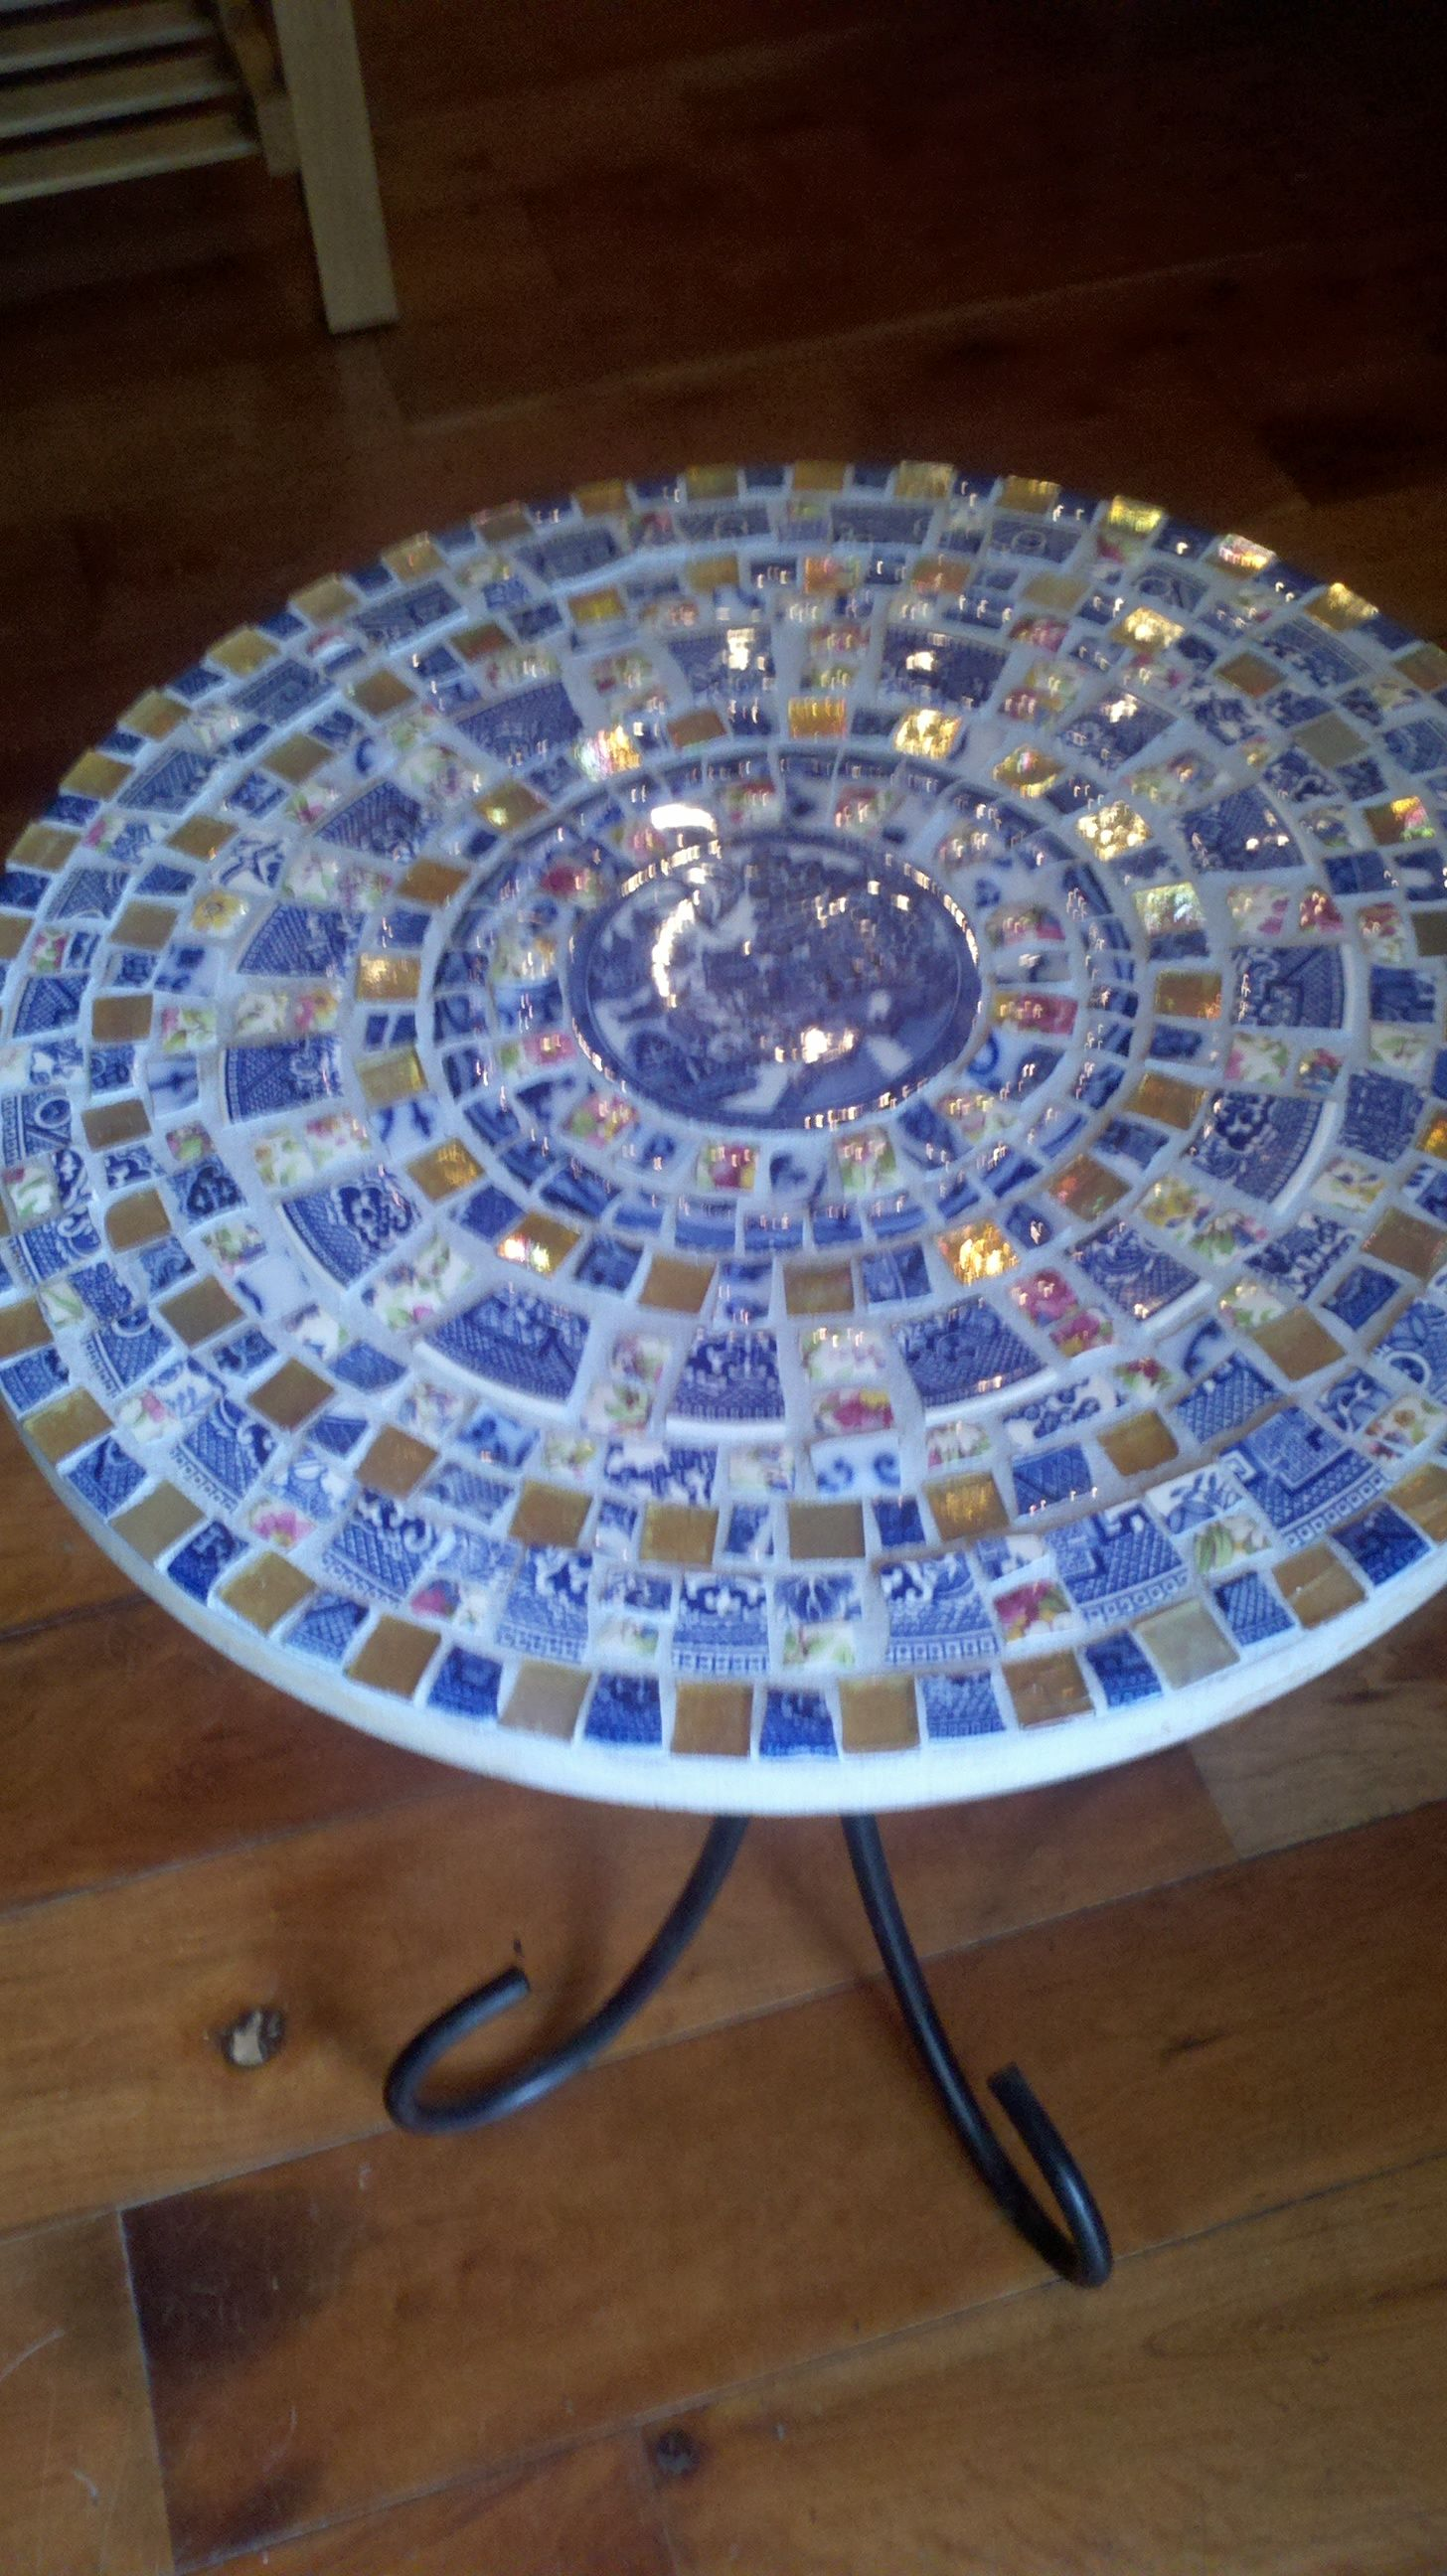 Keramikfliesen Selber Machen Mosaic End Table Diy Mosaik Pinterest Mosaik